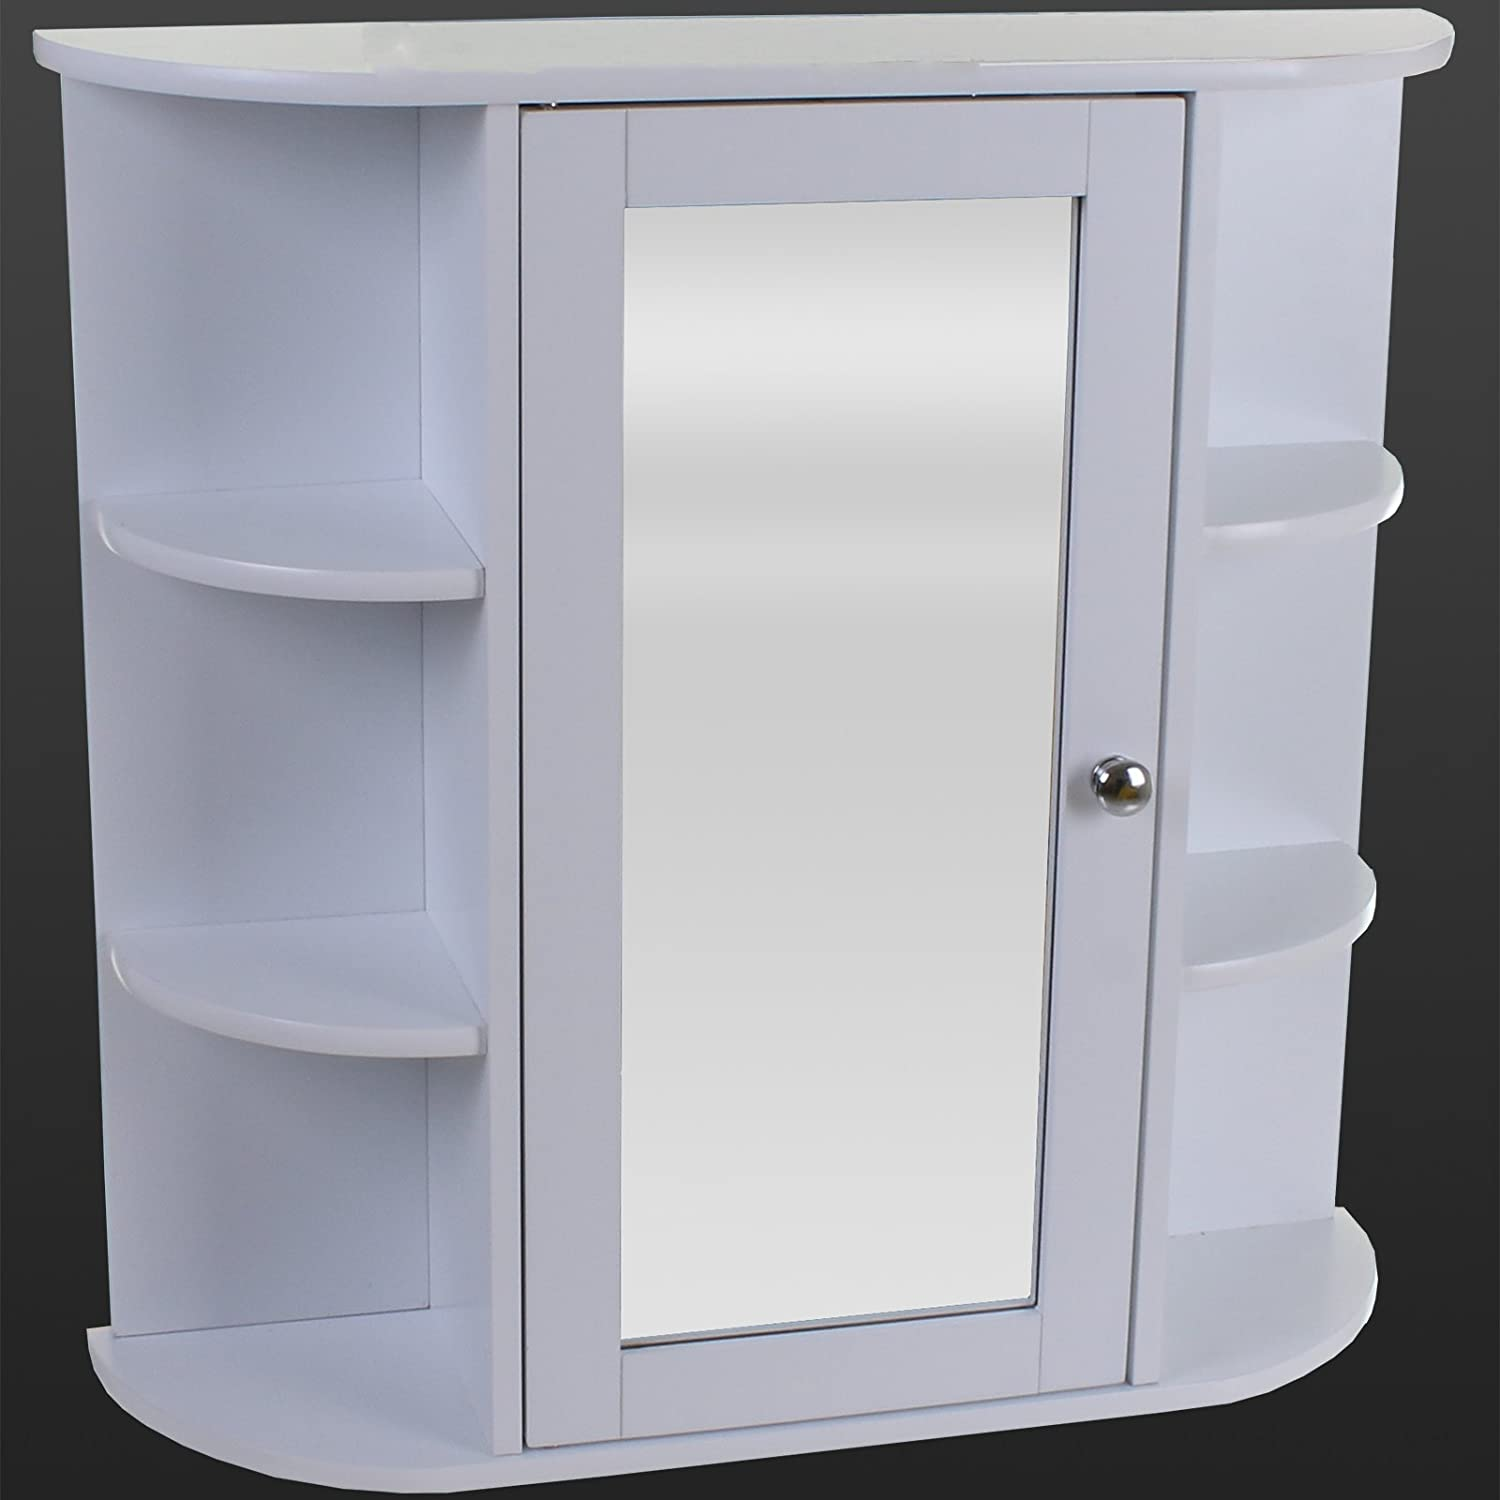 White Wooden Indoor Wall Mountable Bathroom Cabinet With Shelves And Mirror  Door: Amazon: Kitchen & Home